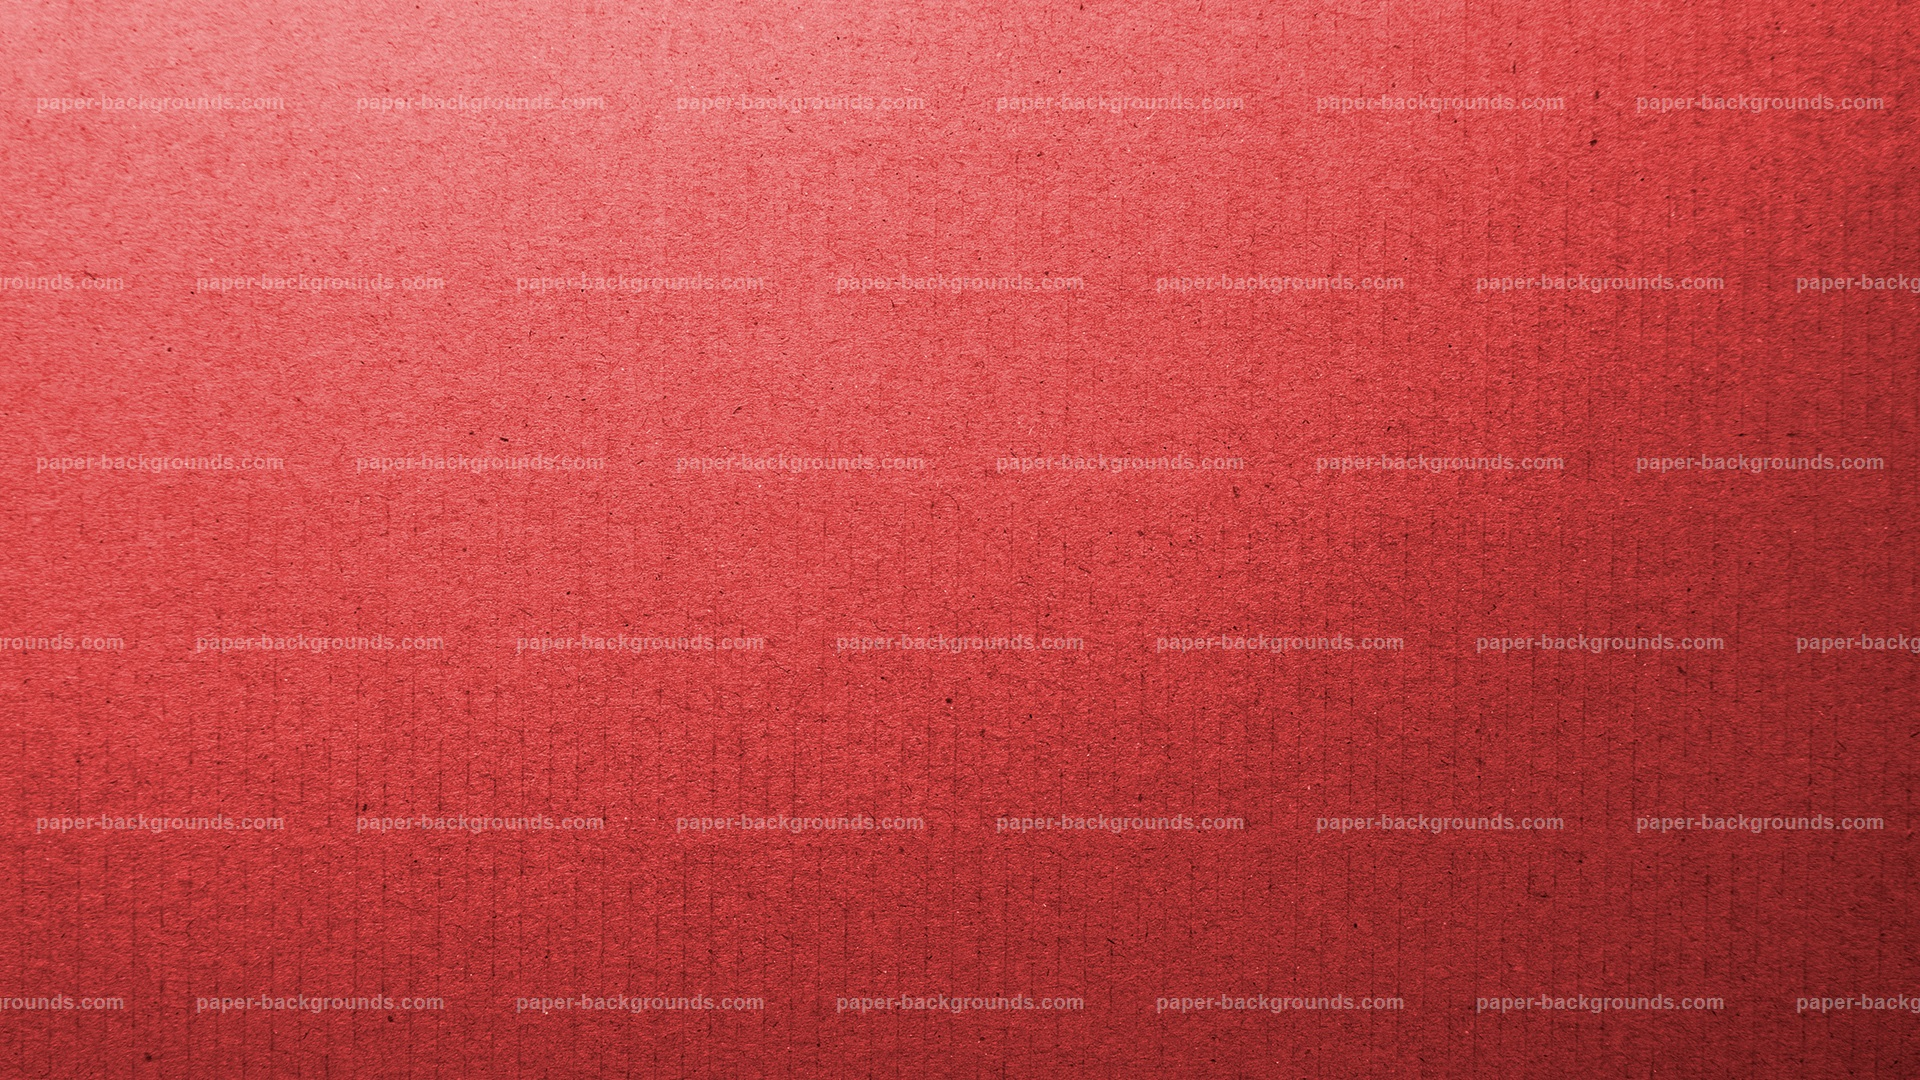 Red Cardboard Texture HD